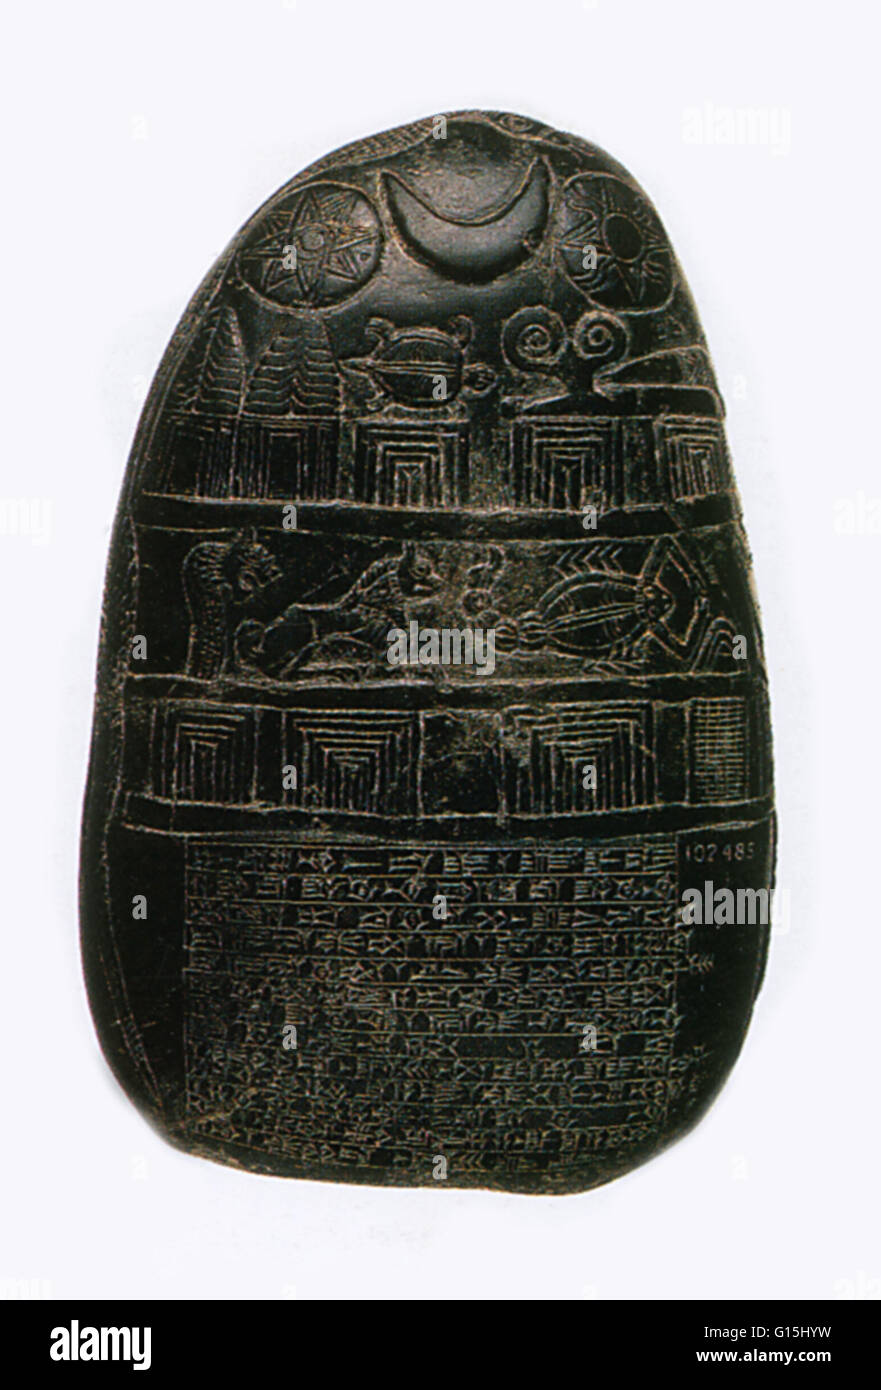 Babylonian boundary stone, or kudurru, depicting symbols of the gods and goddesses as witnesses to a legal agreement. - Stock Image